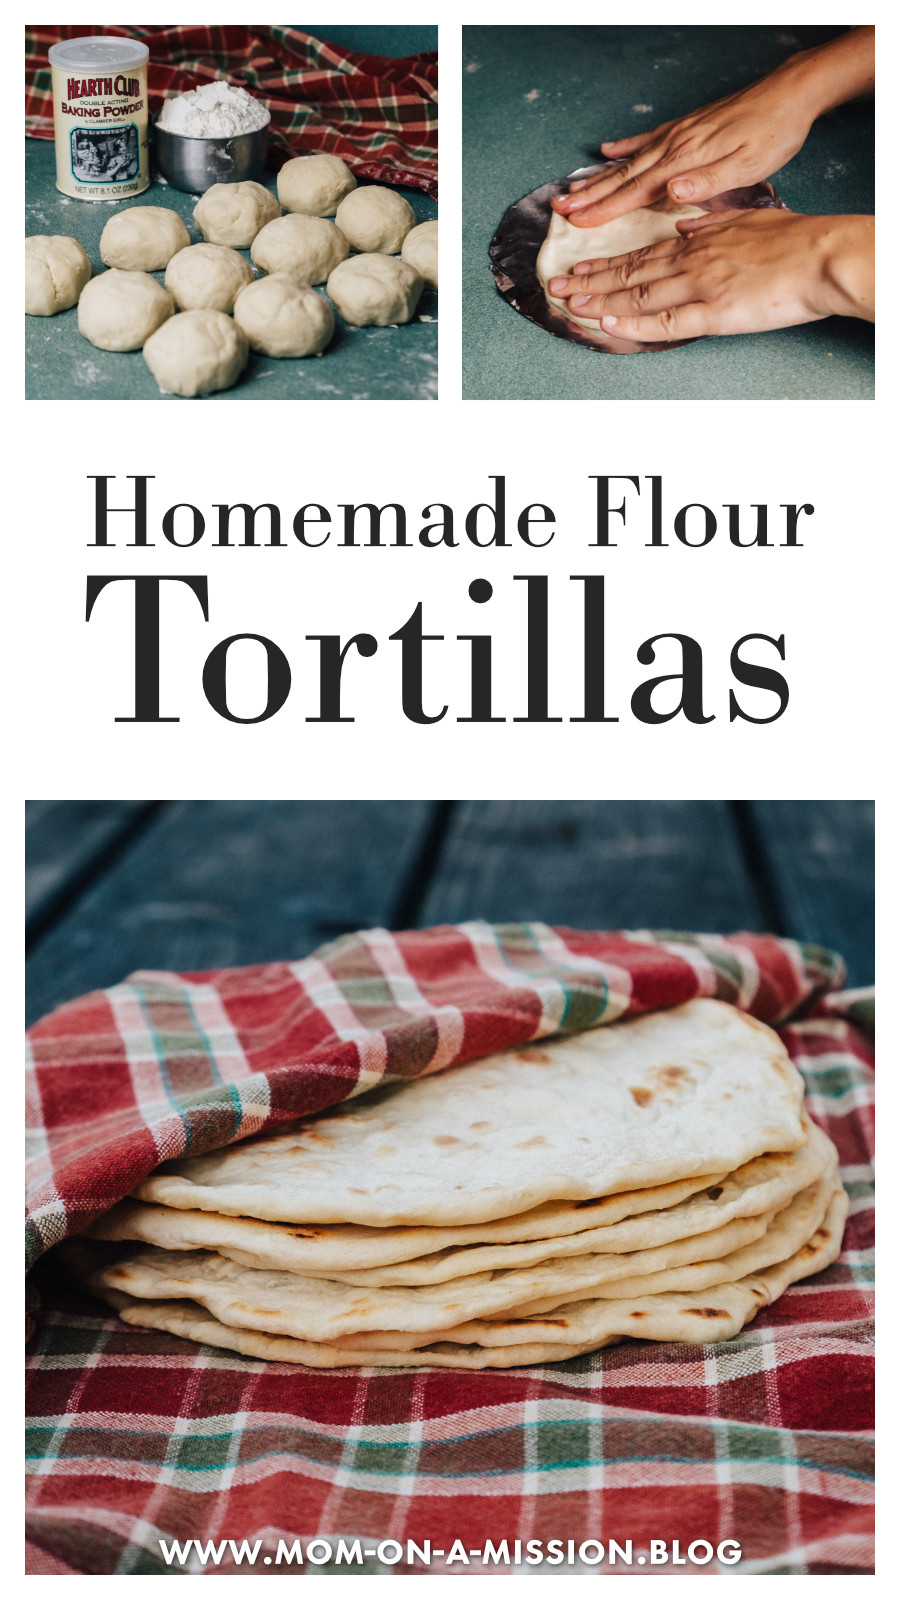 Homemade Flour Tortillas are so much more flavorful than store-bought—and are missing the icky chemicals too! Give this recipe a try today. #flourtortillas #recipe # homemade #momonamissionblog